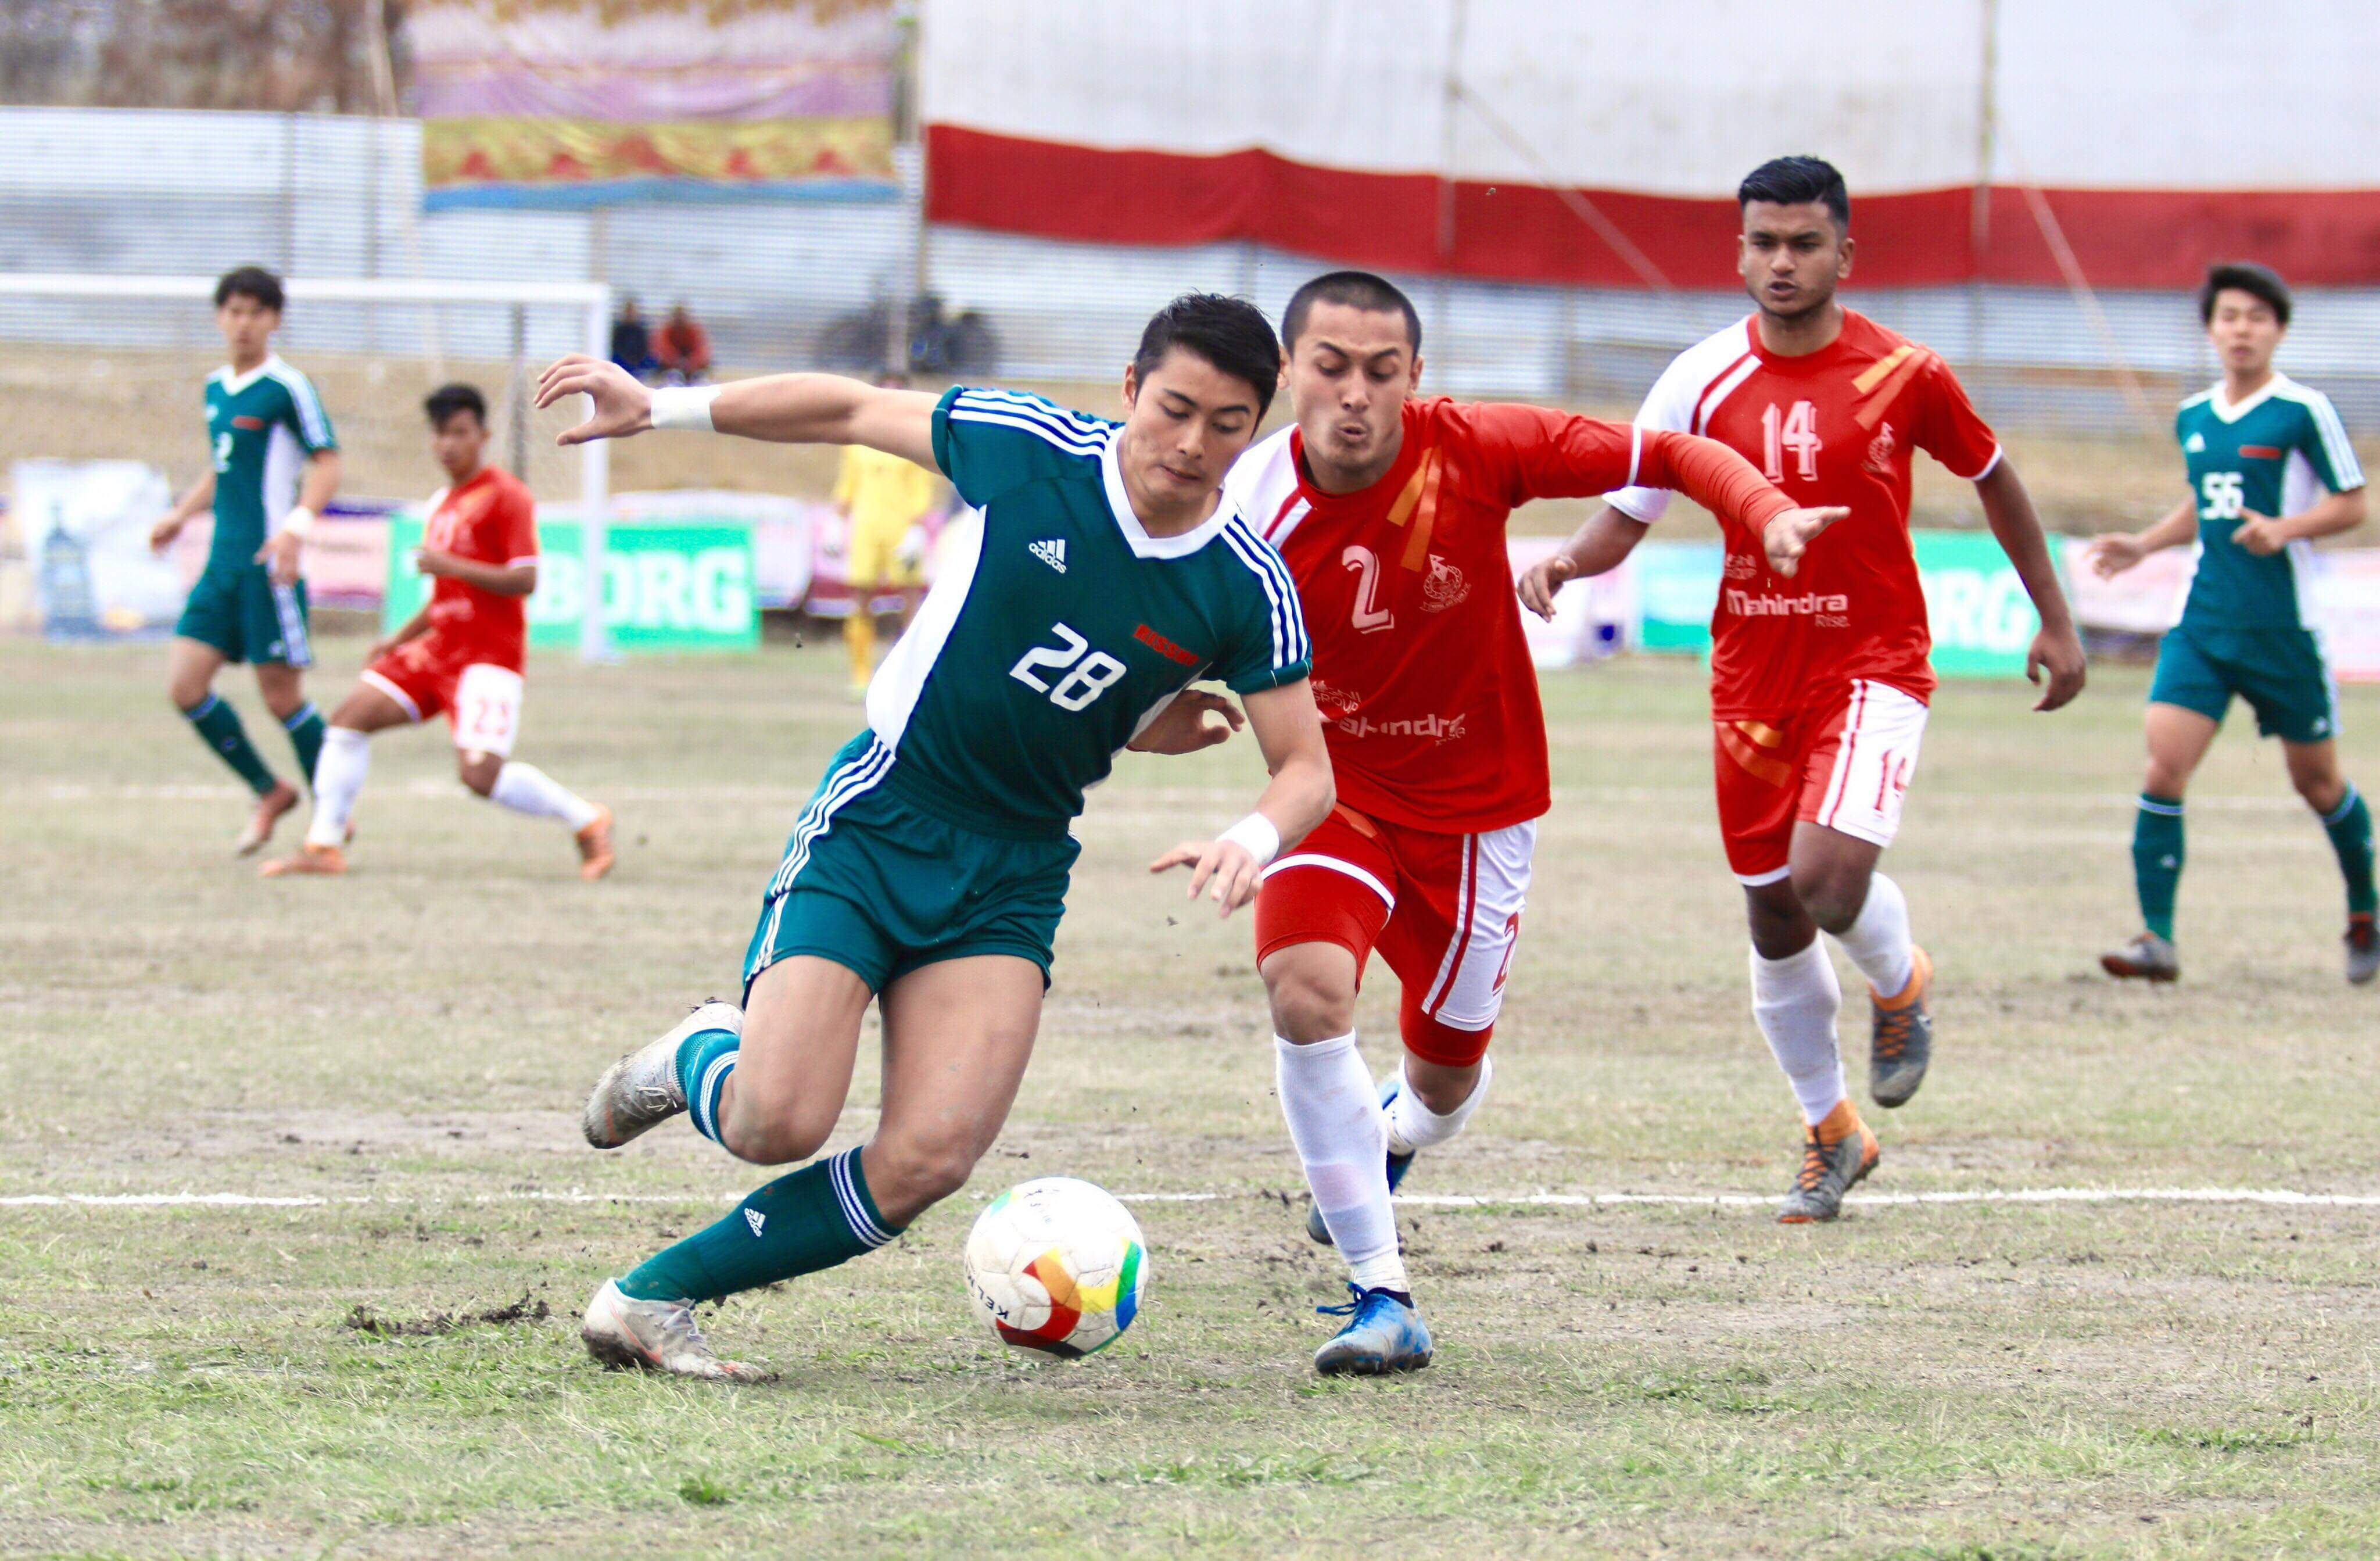 Players of Nepal APF Club and Rissho University (left) of Japan vie for the ball during their semi-final match of the sixth Manakamana Cable Car Pokhara Cup at the Pokhara Stadium on Friday. APF won the match 4-1 on penalties. Photo: THT